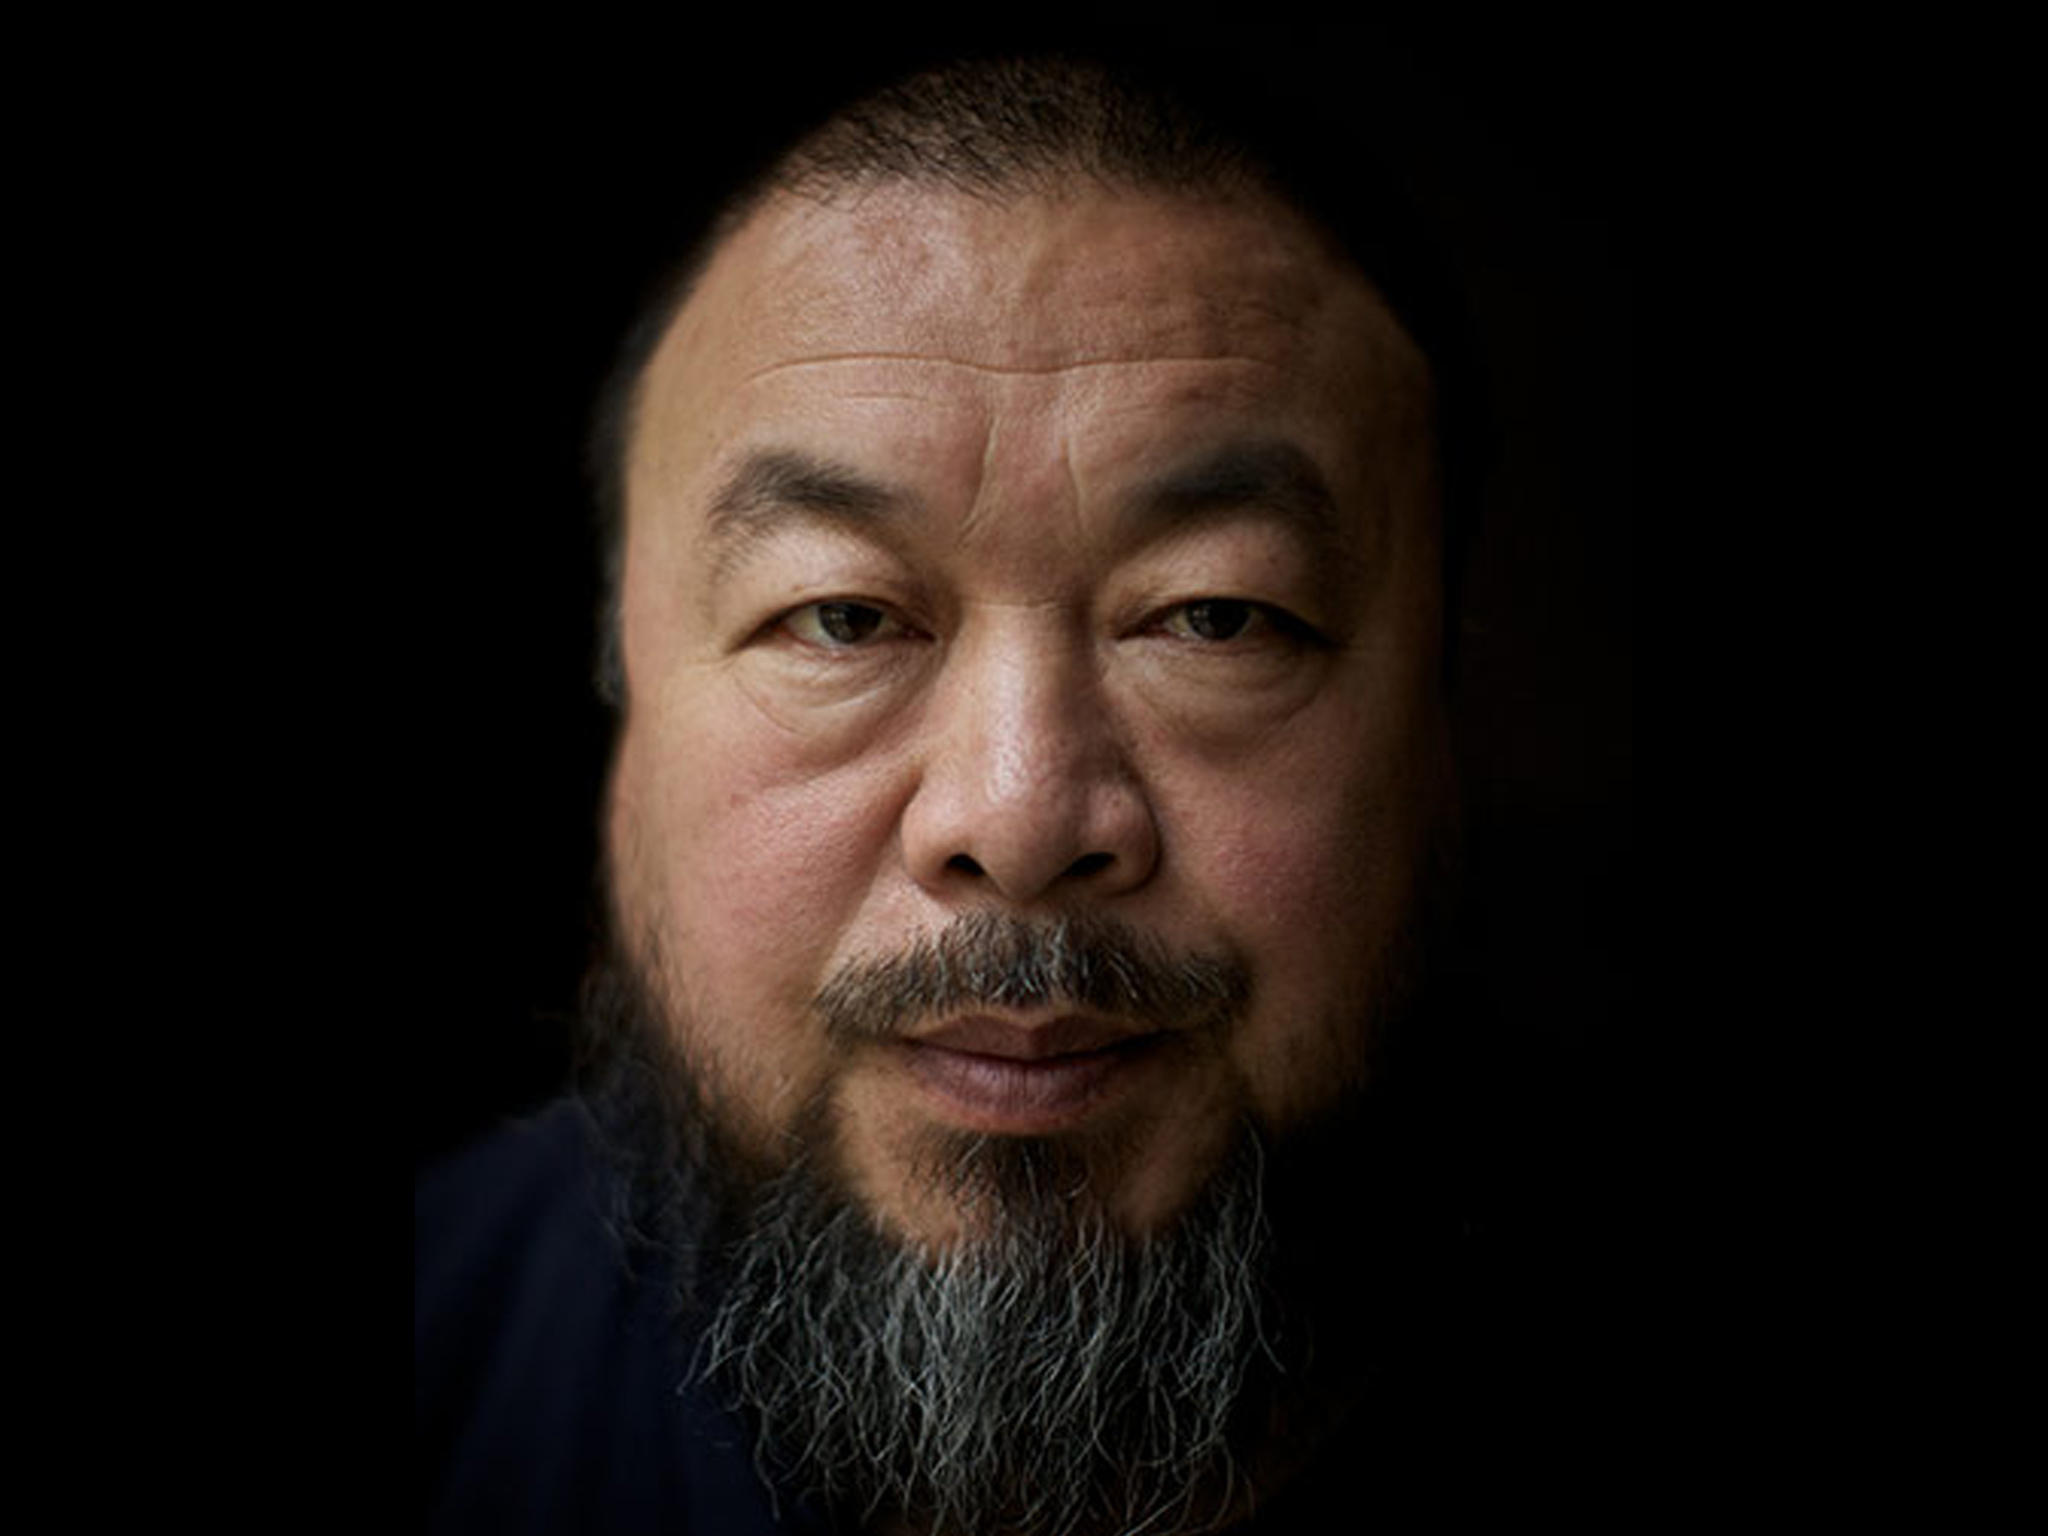 Interview: Ai Weiwei on his new solo exhibition in Hong Kong